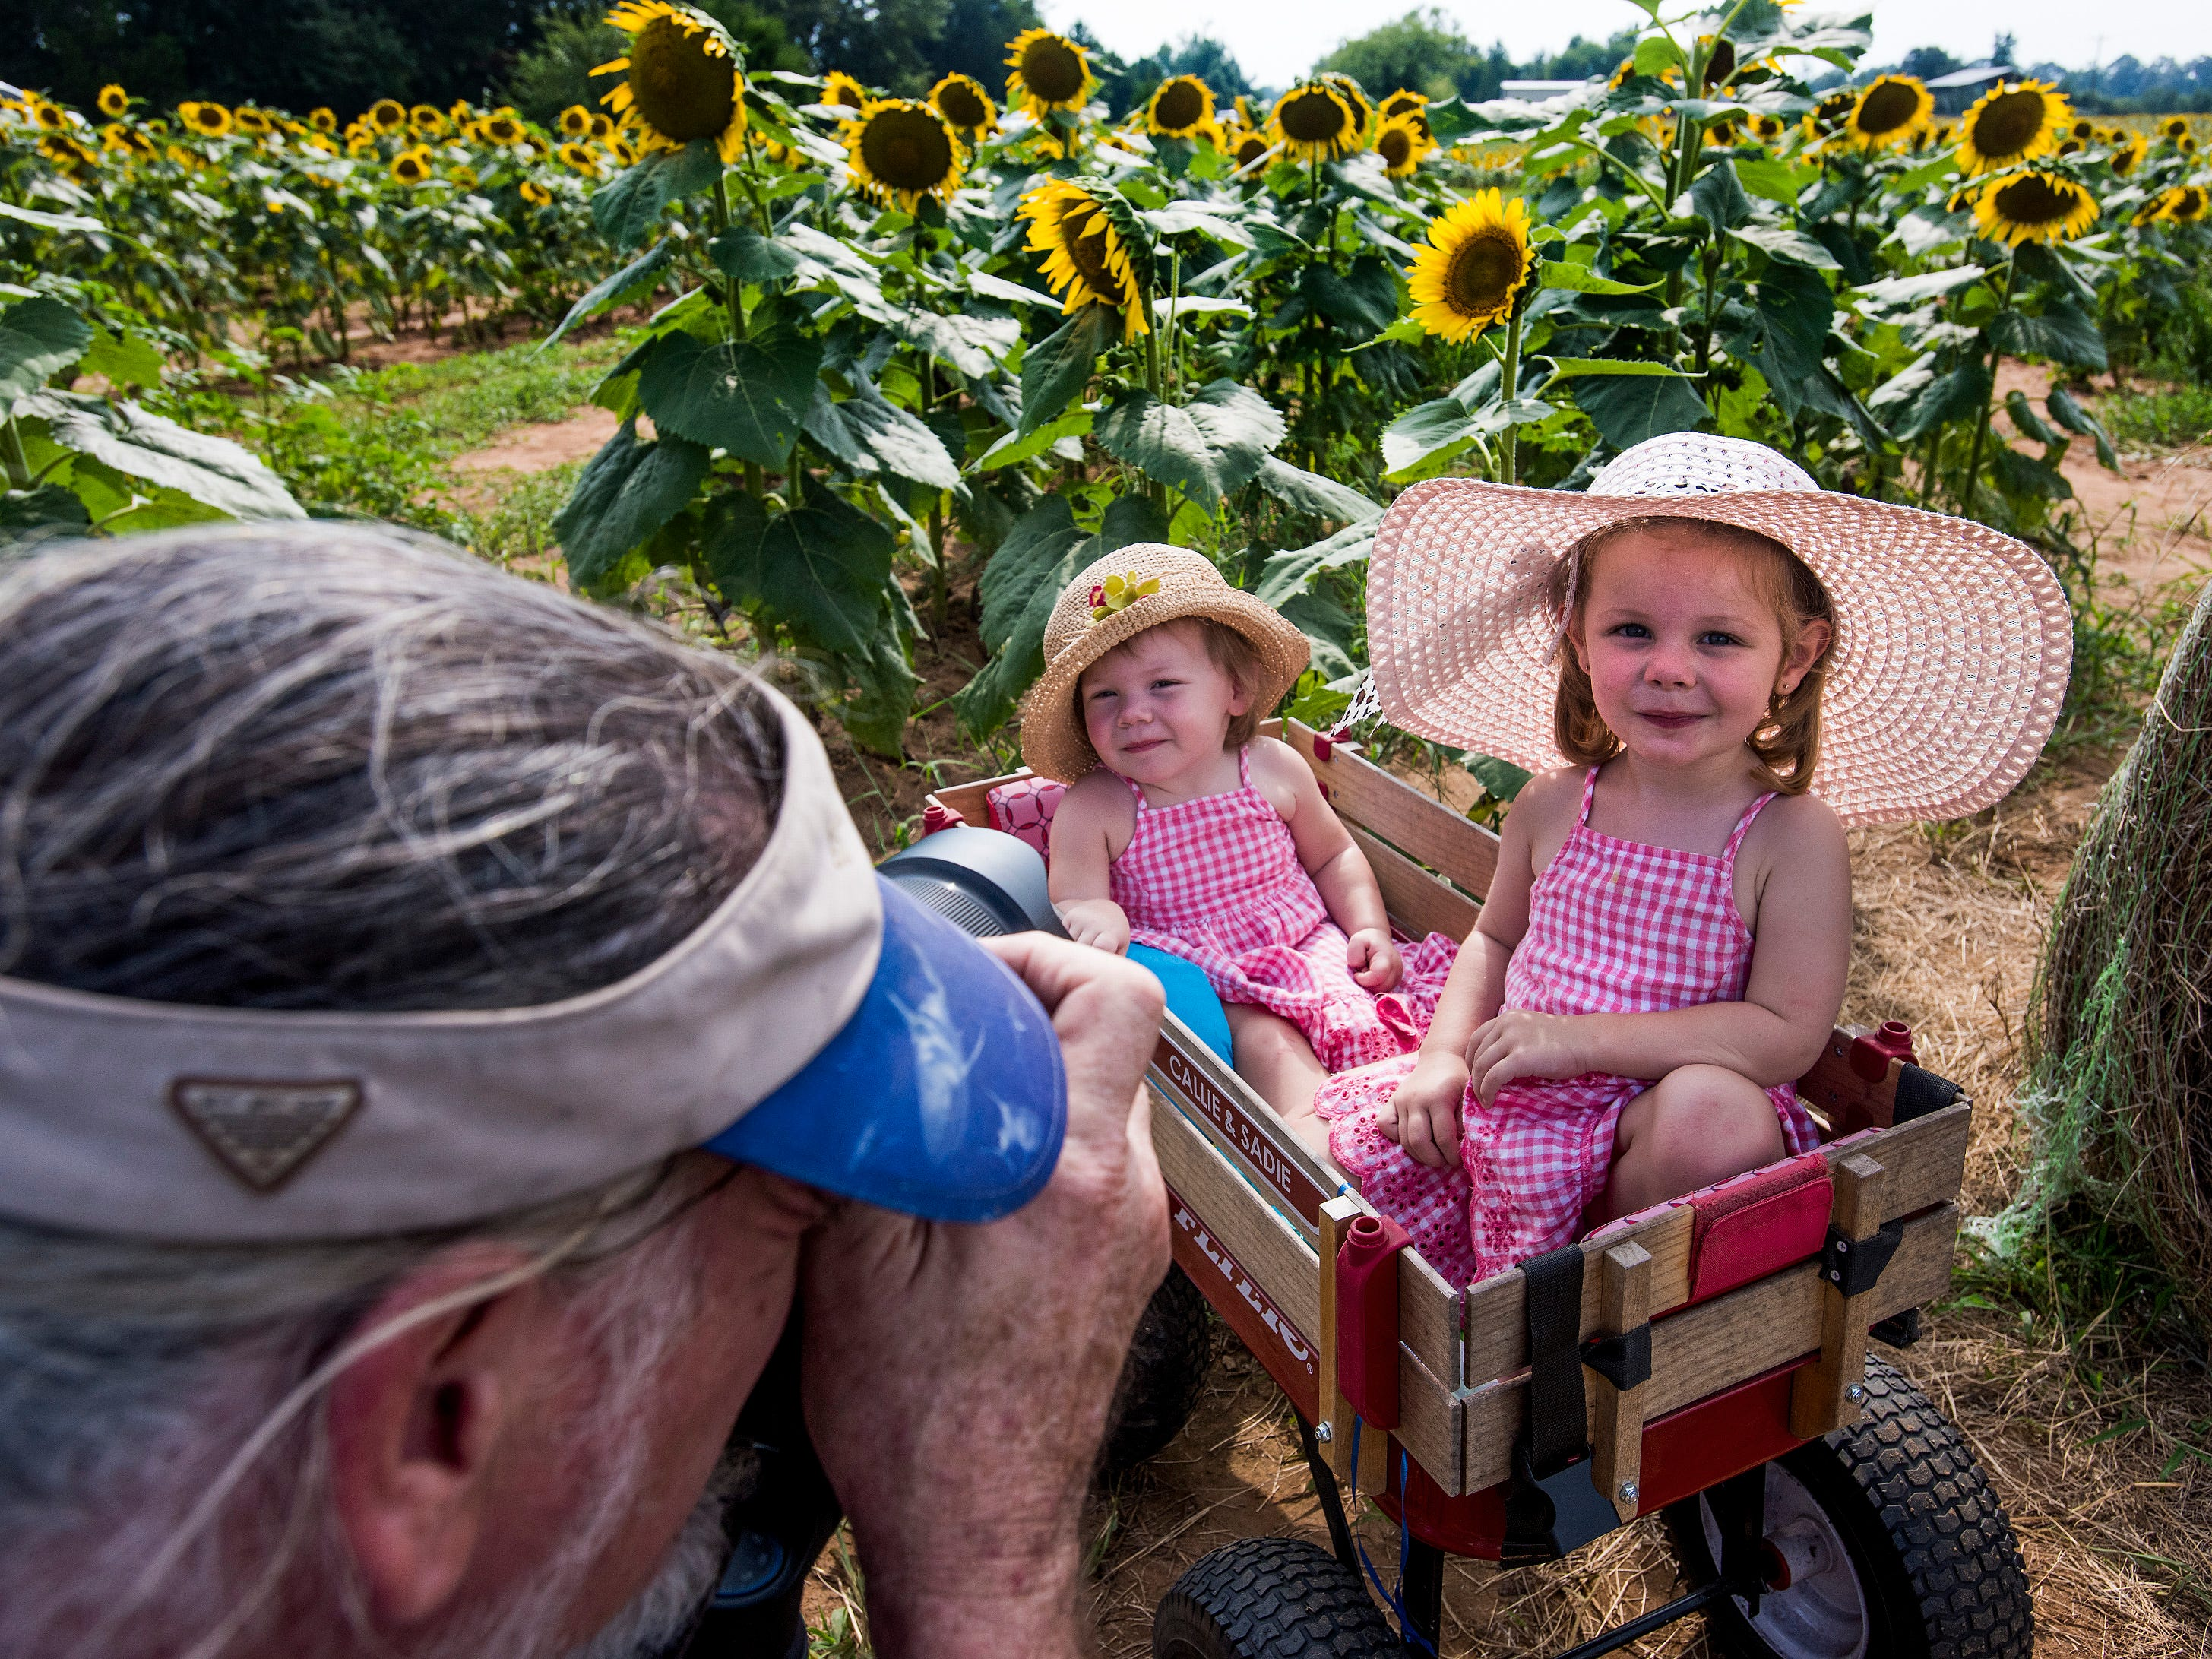 Sadie Young, left, and Callie Young pose for photos with their grandfather Mike Young in the Sheridan family sunflower field about five miles west of Autaugaville, Ala. on Monday August 13, 2018.